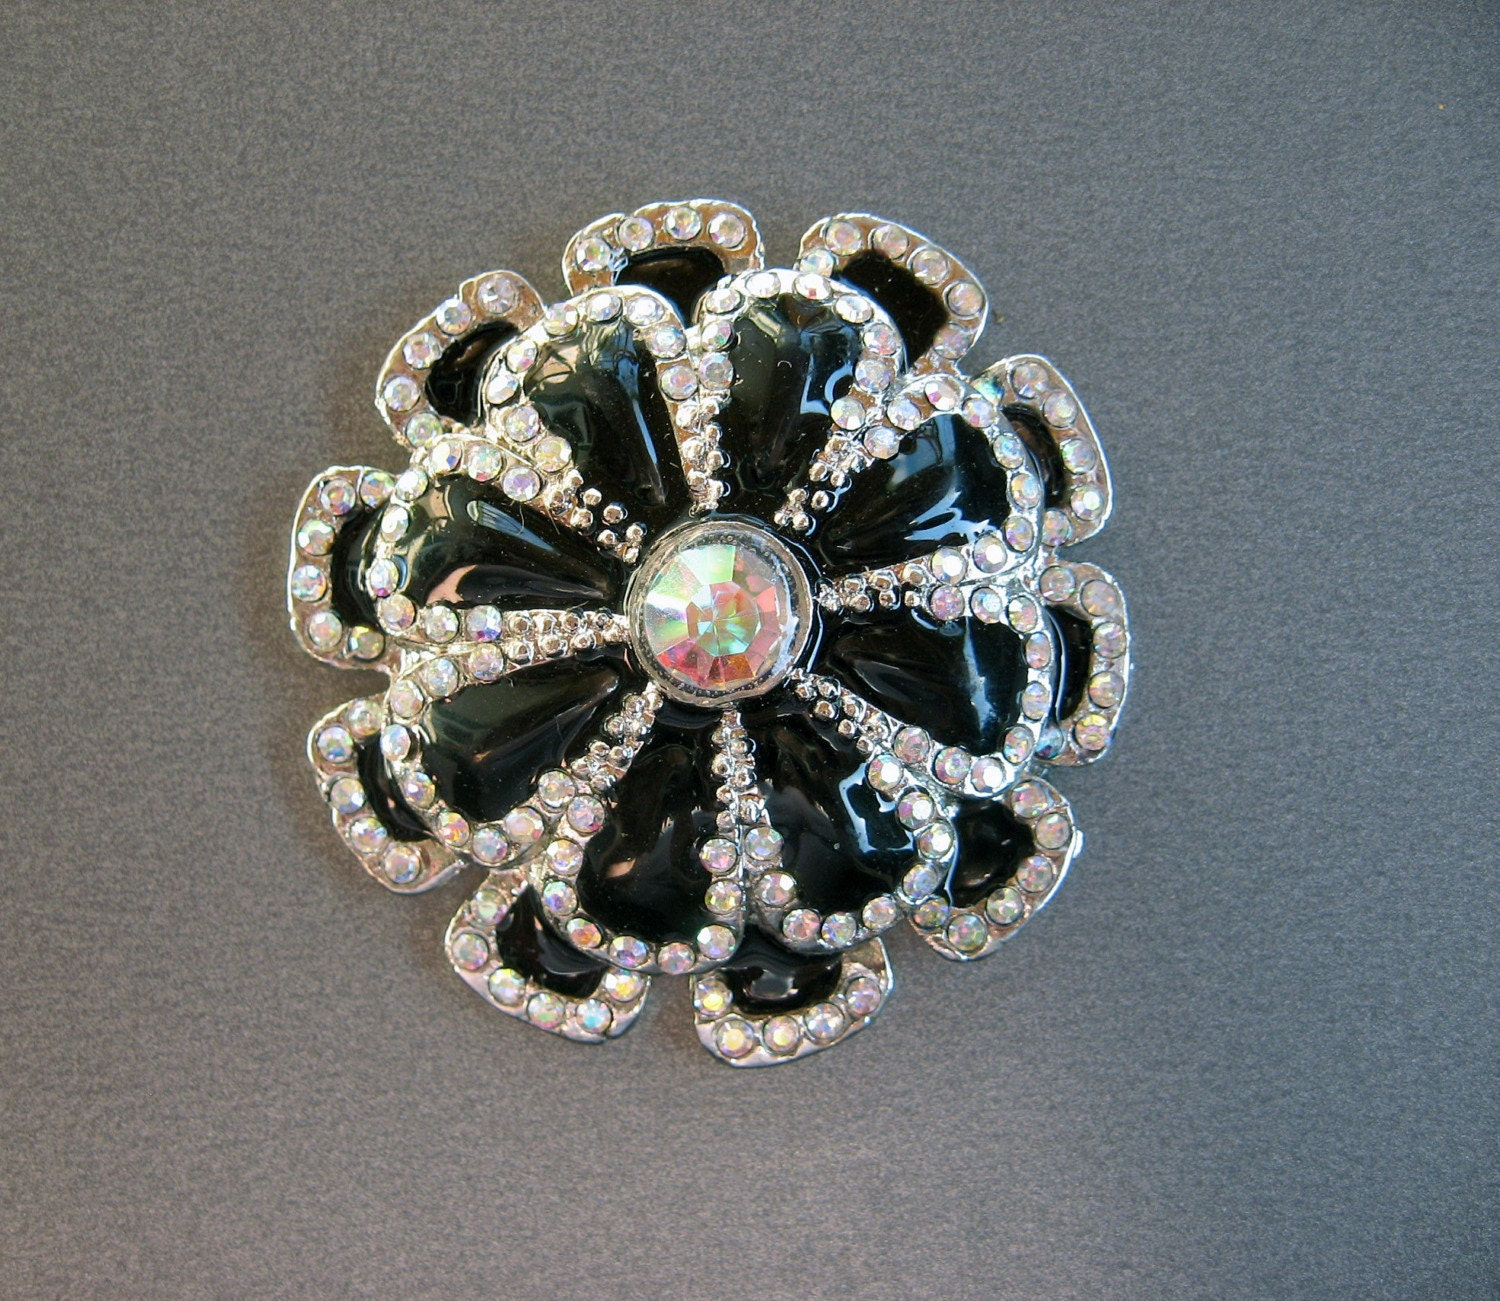 Rhinestone and Enamel Magnet - Repurposed Brooch